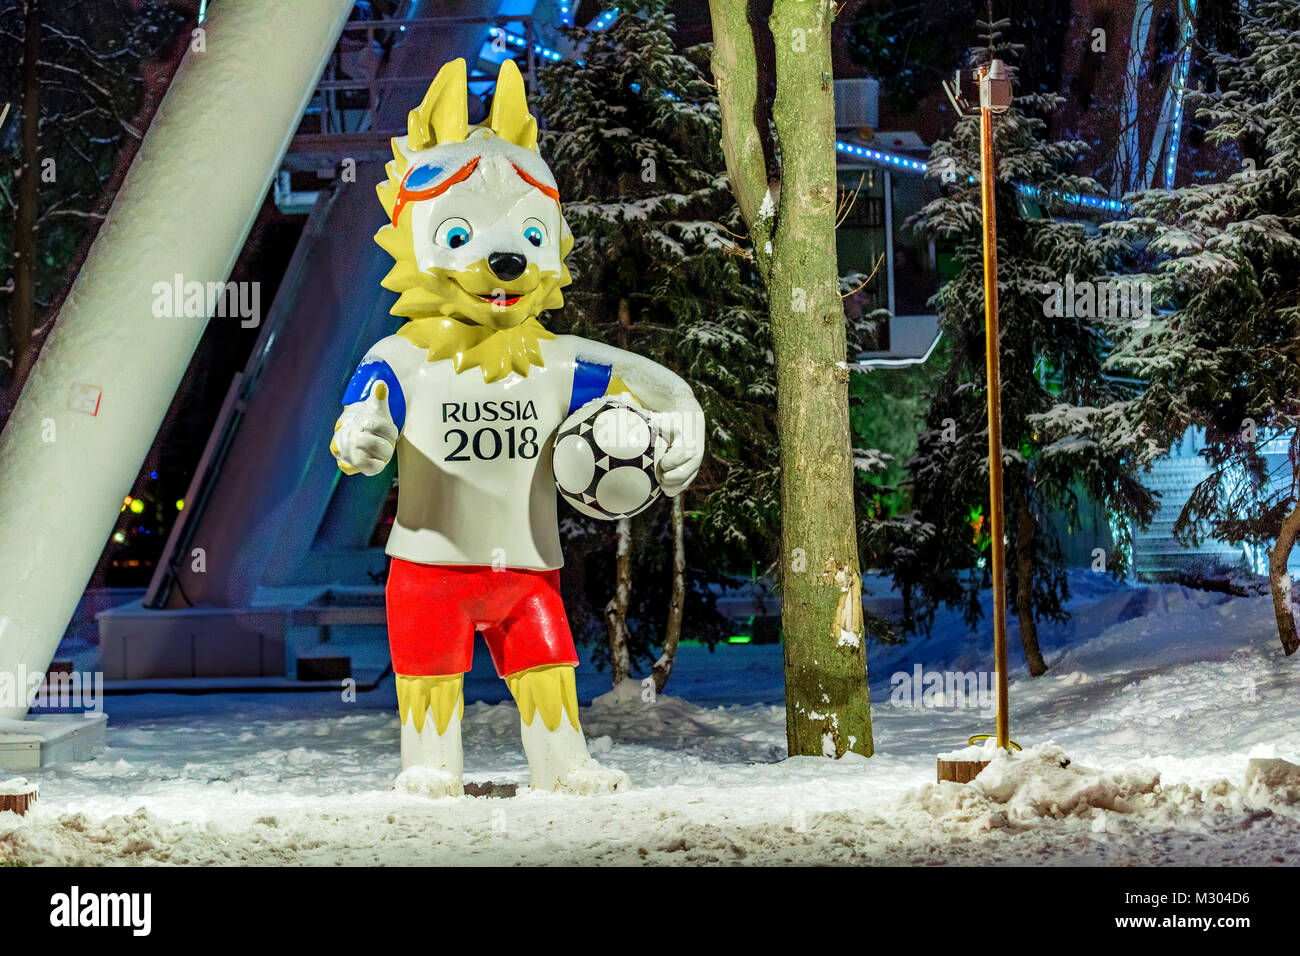 ROSTOV-ON-DON, RUSSIA - JANUARY 19, 2018: The official mascot of the 2018 FIFA World Cup called Zabivaka - Stock Image